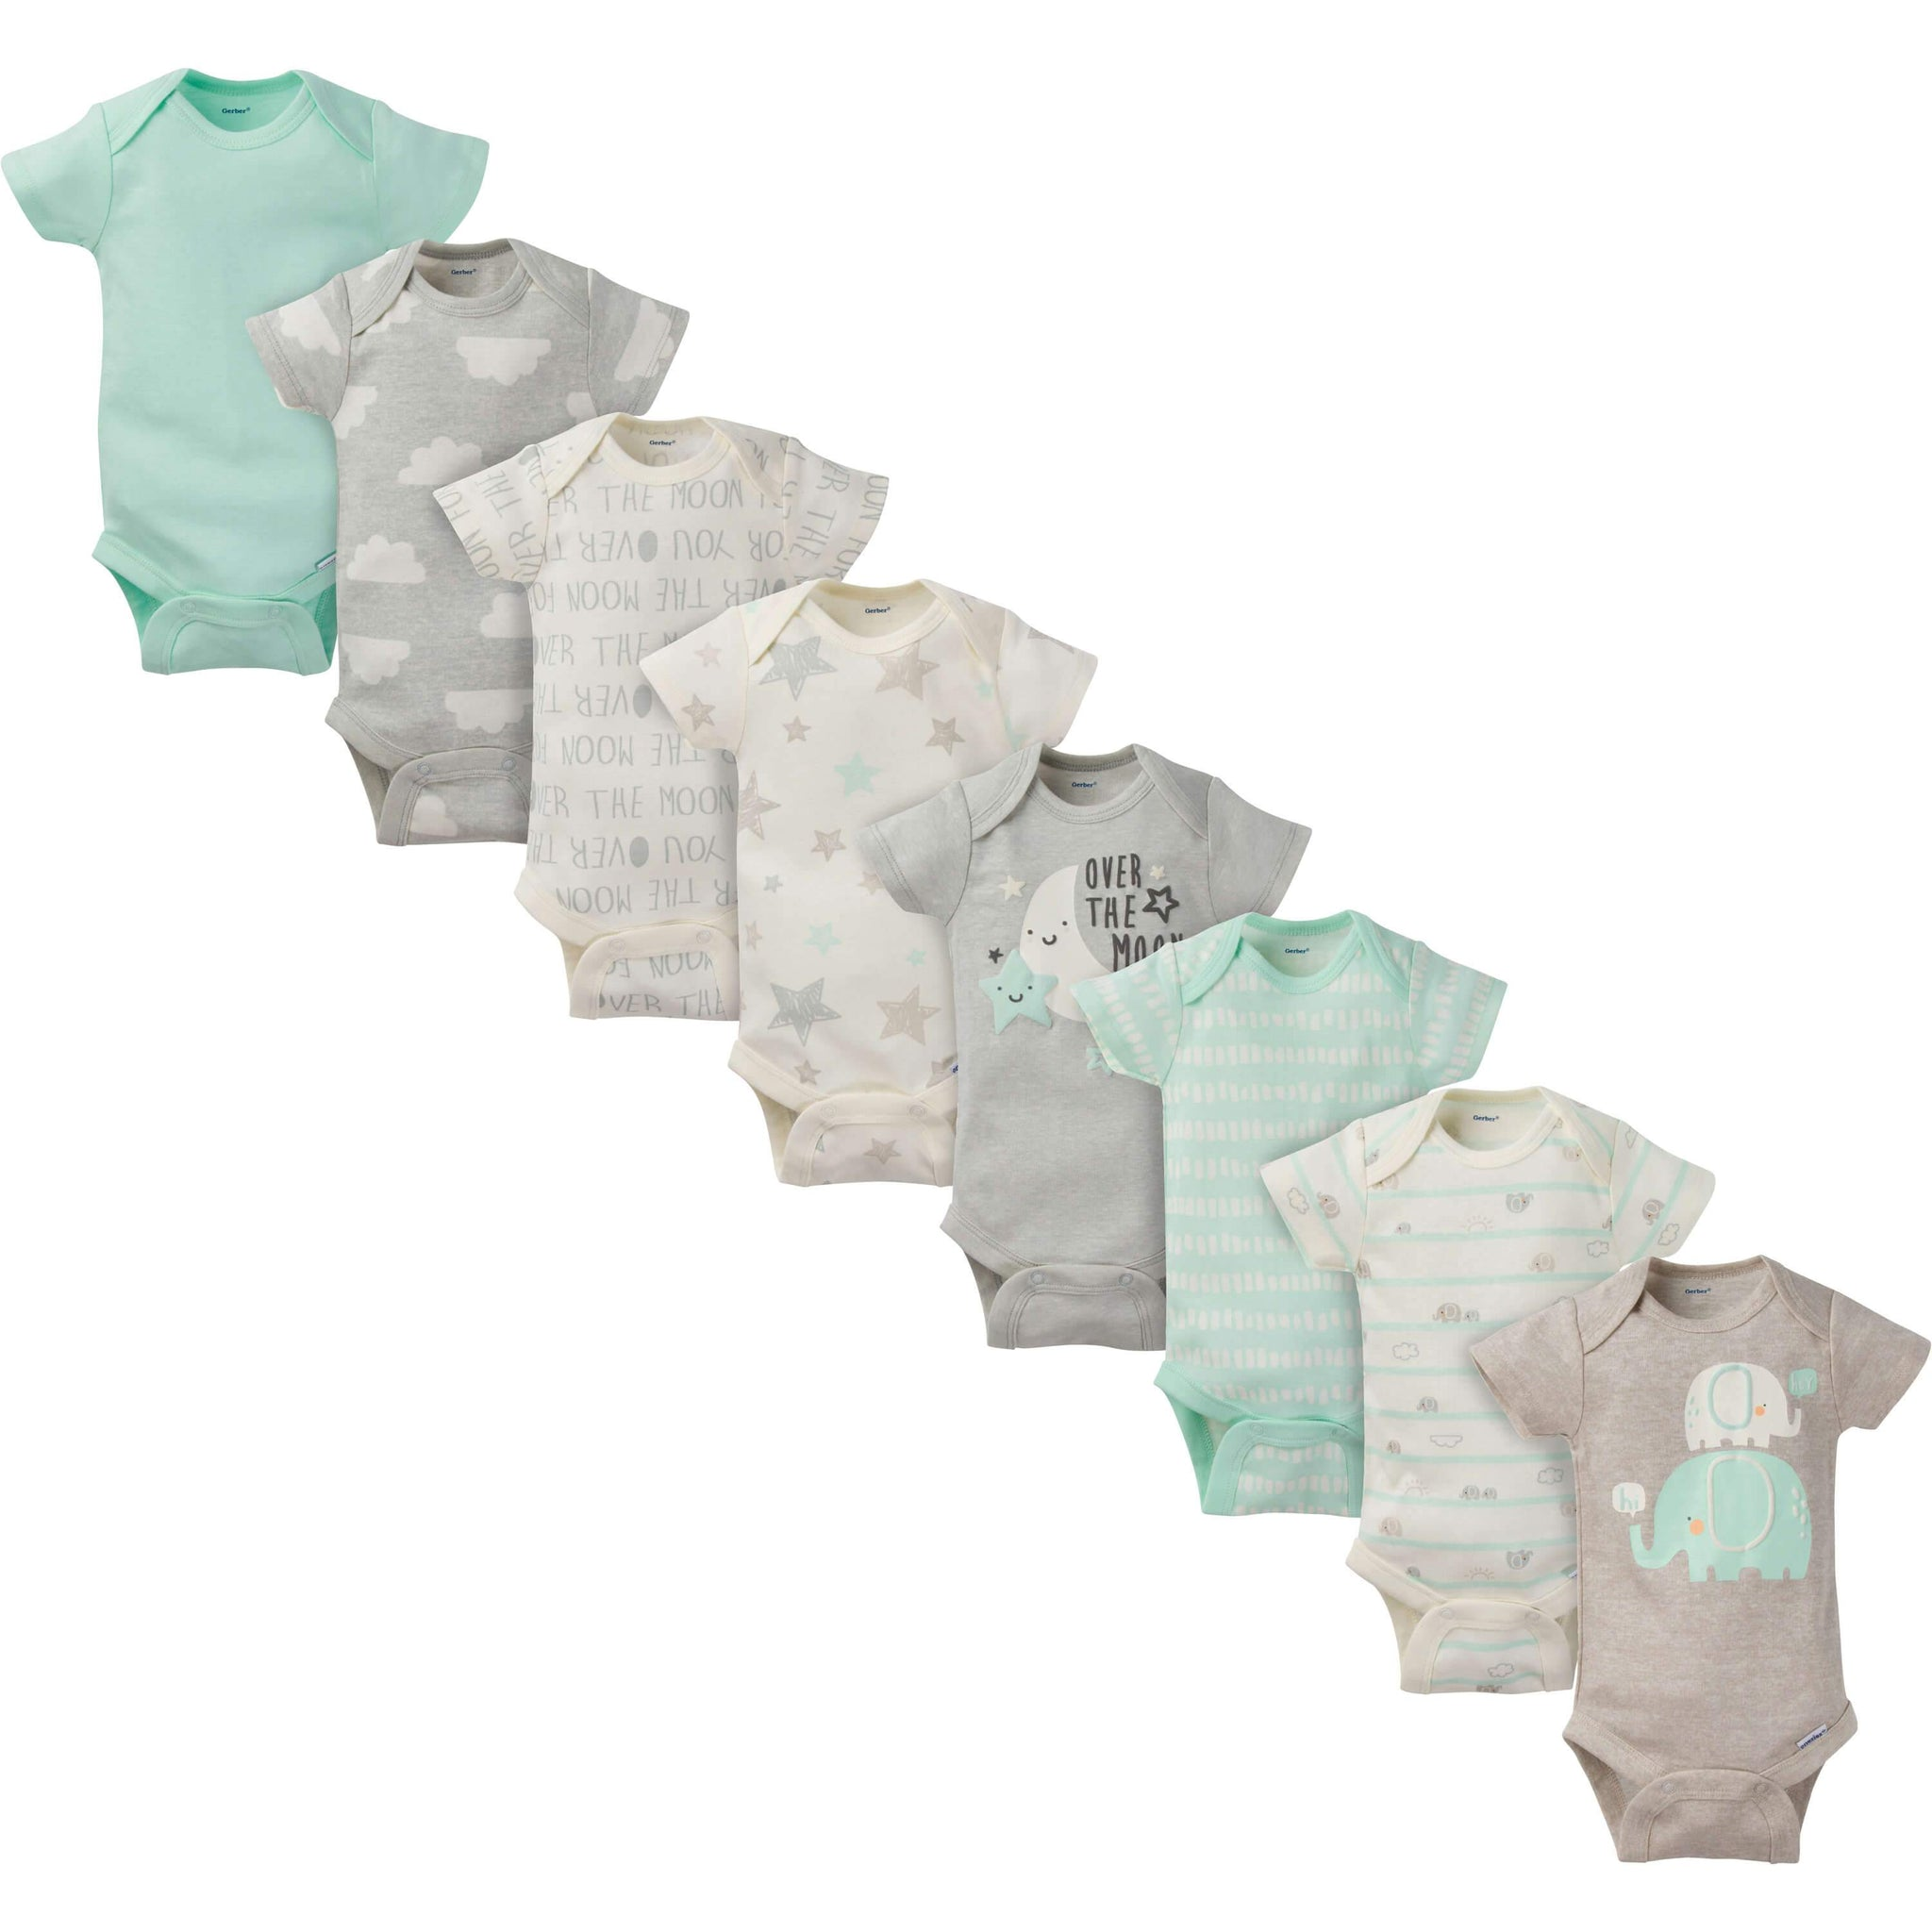 8-Pack Neutral Elephant Short-Sleeve Onesies Bodysuits